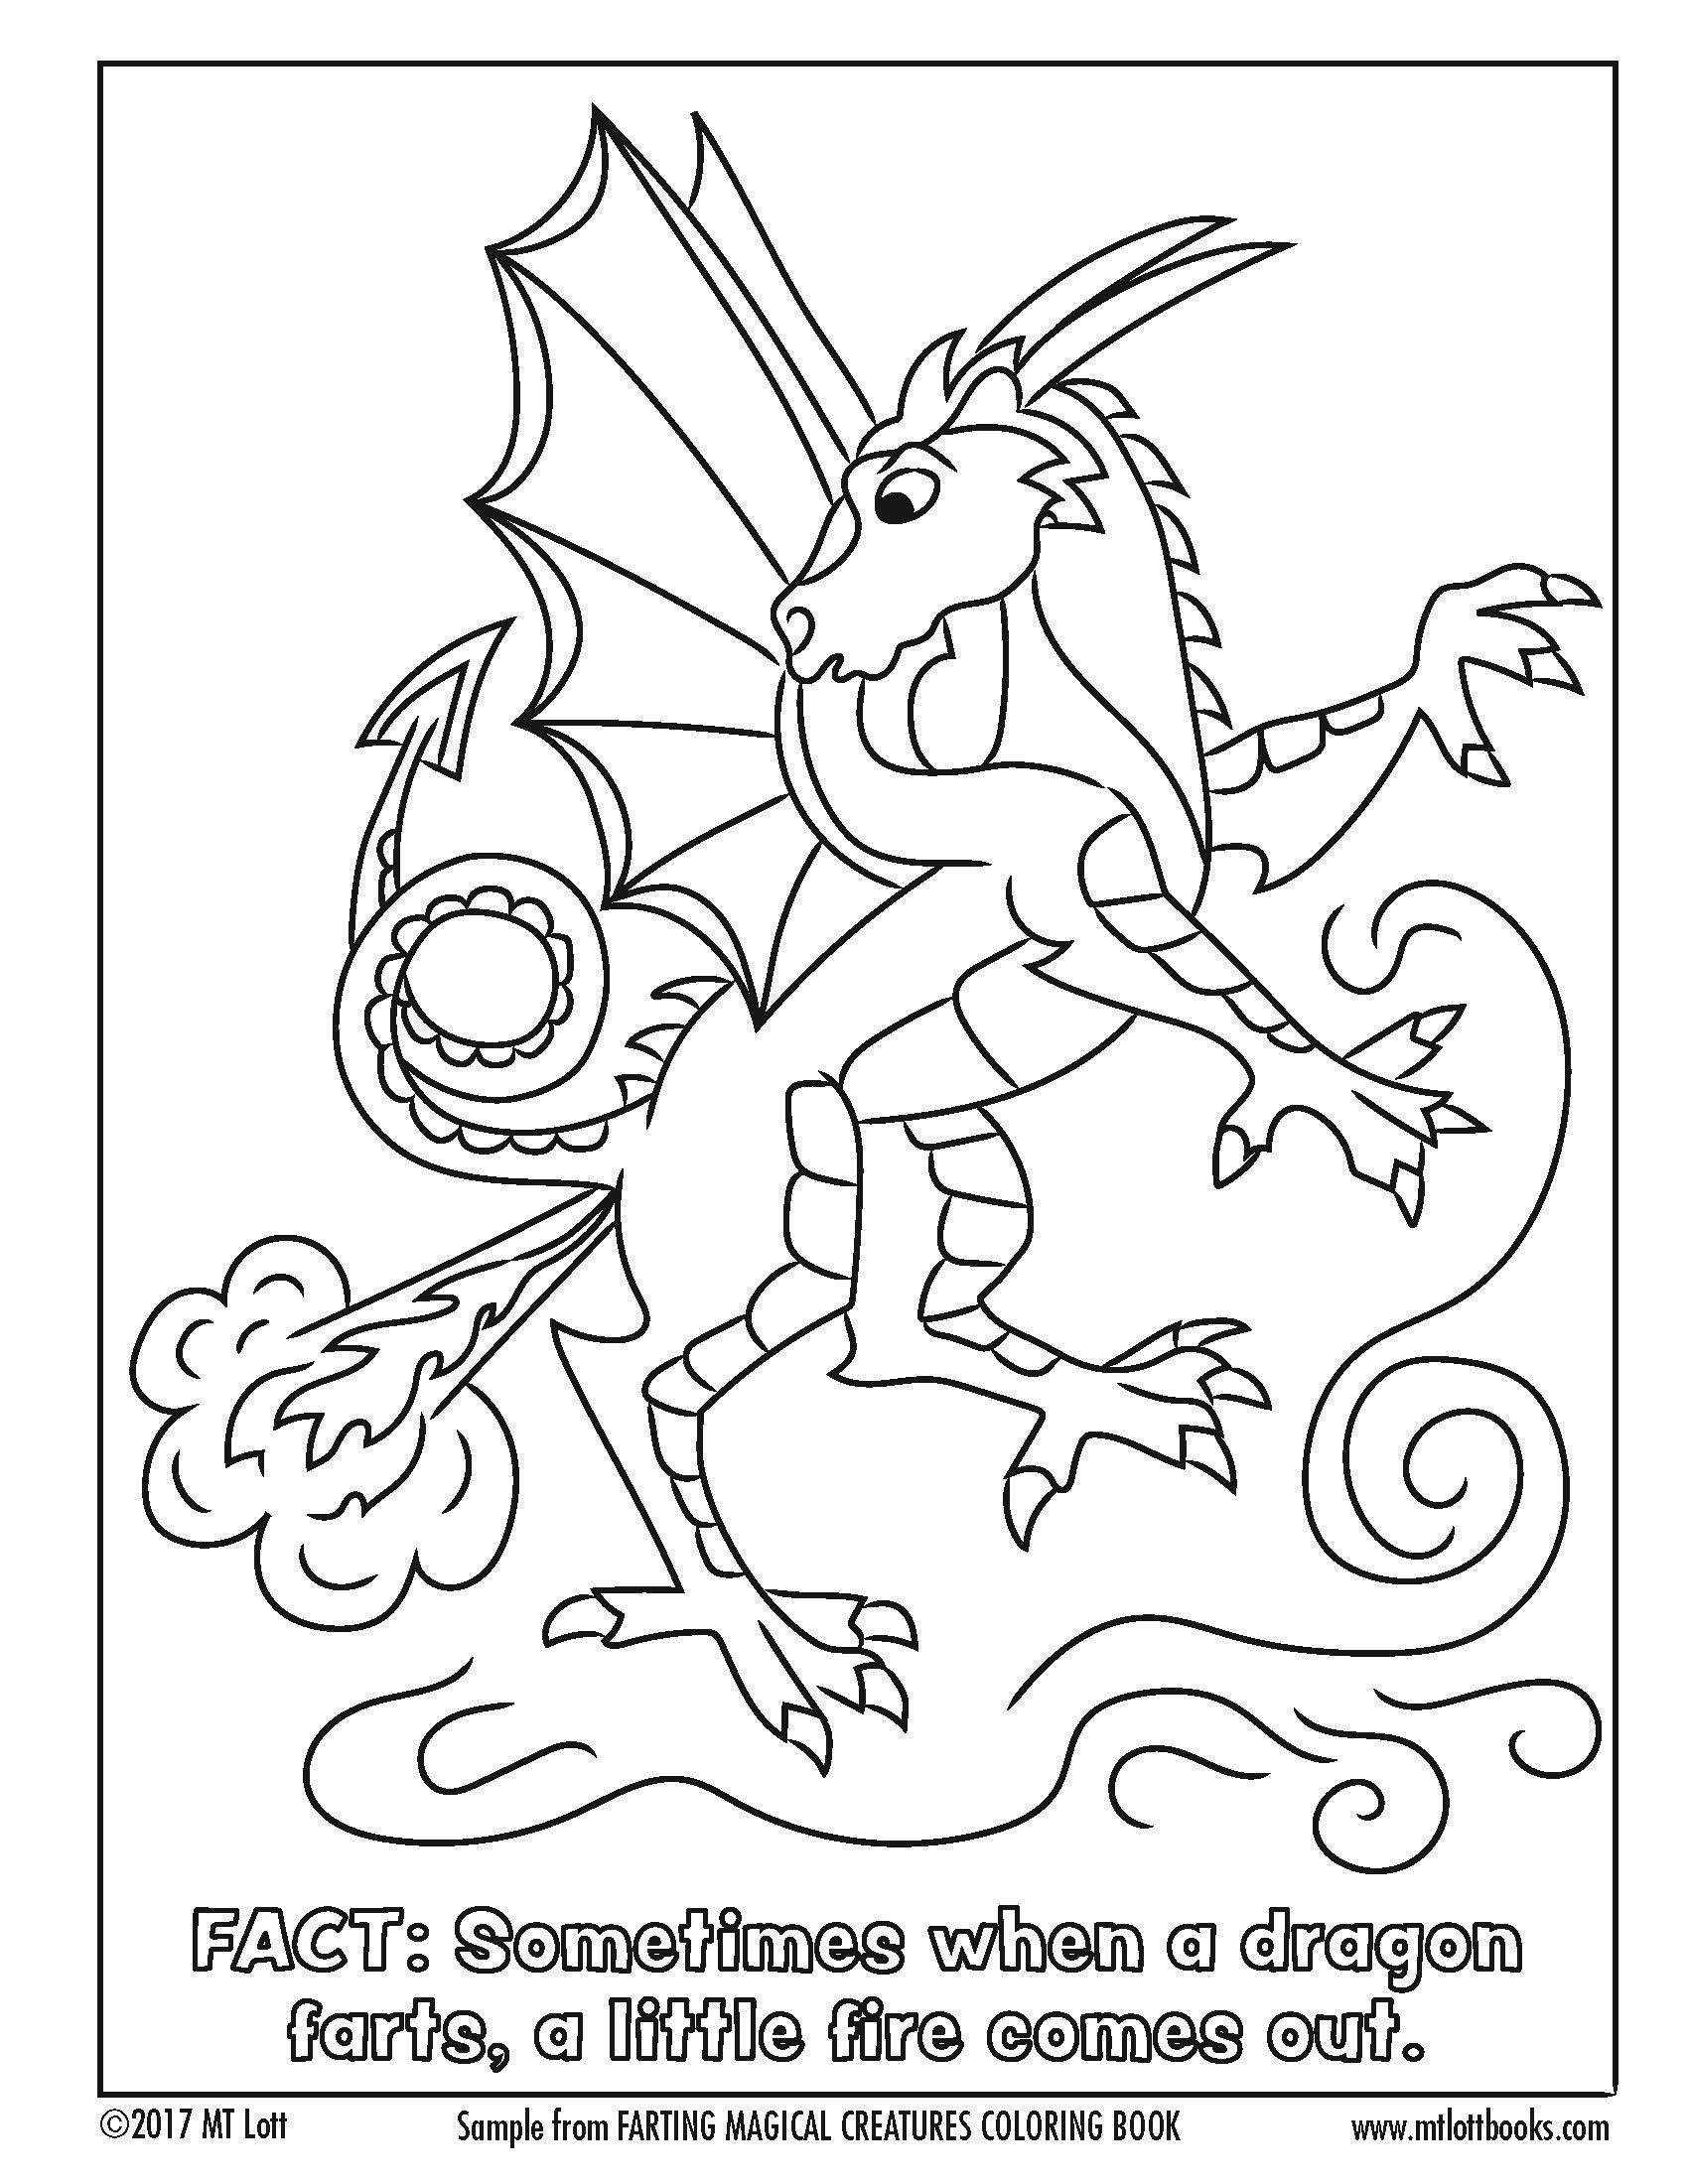 Free Coloring Page From Mt Lott S Farting Magical Free Coloring Pages Unicorn Coloring Pages Cute Coloring Pages